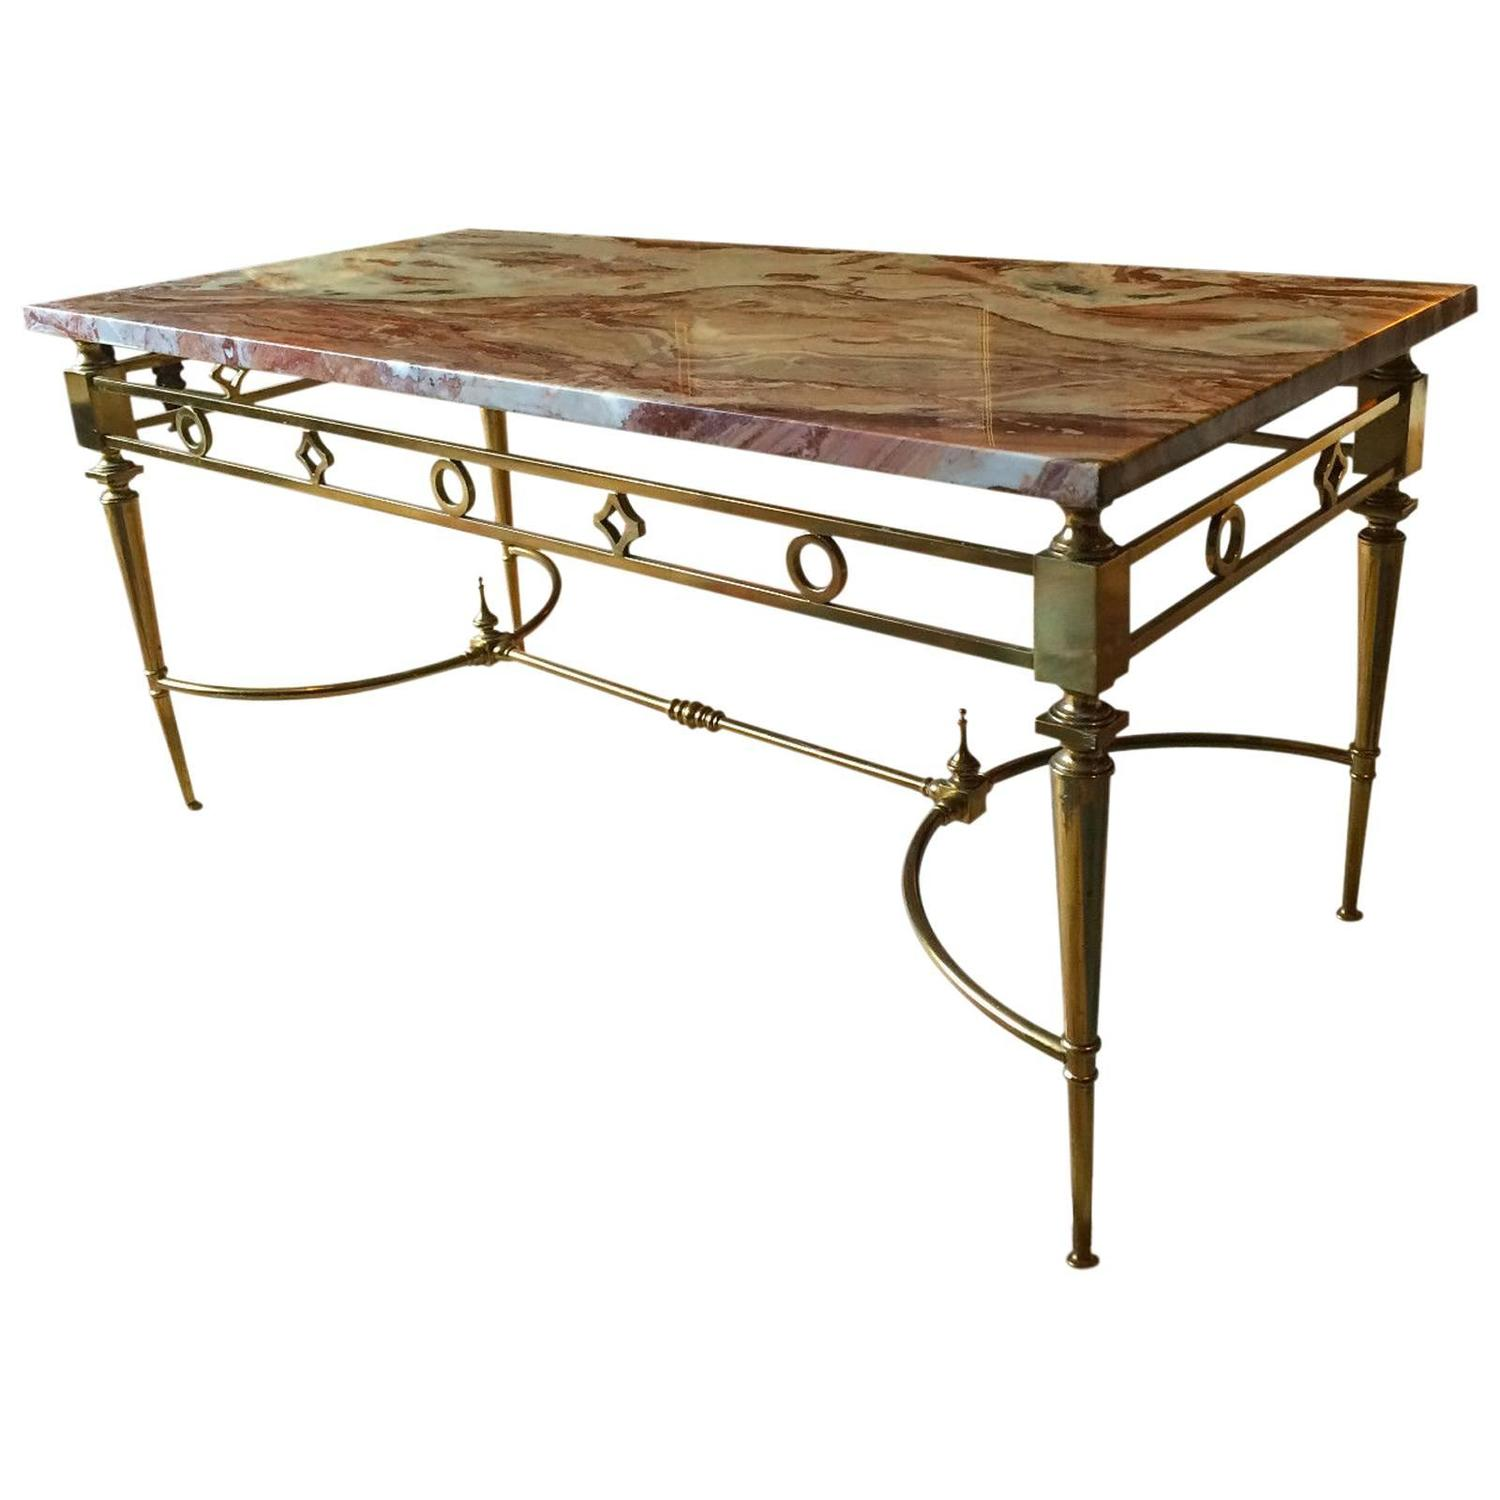 Antique Style Coffee Table Italian Marble Brass Rectangular Designer For Sale At 1stdibs